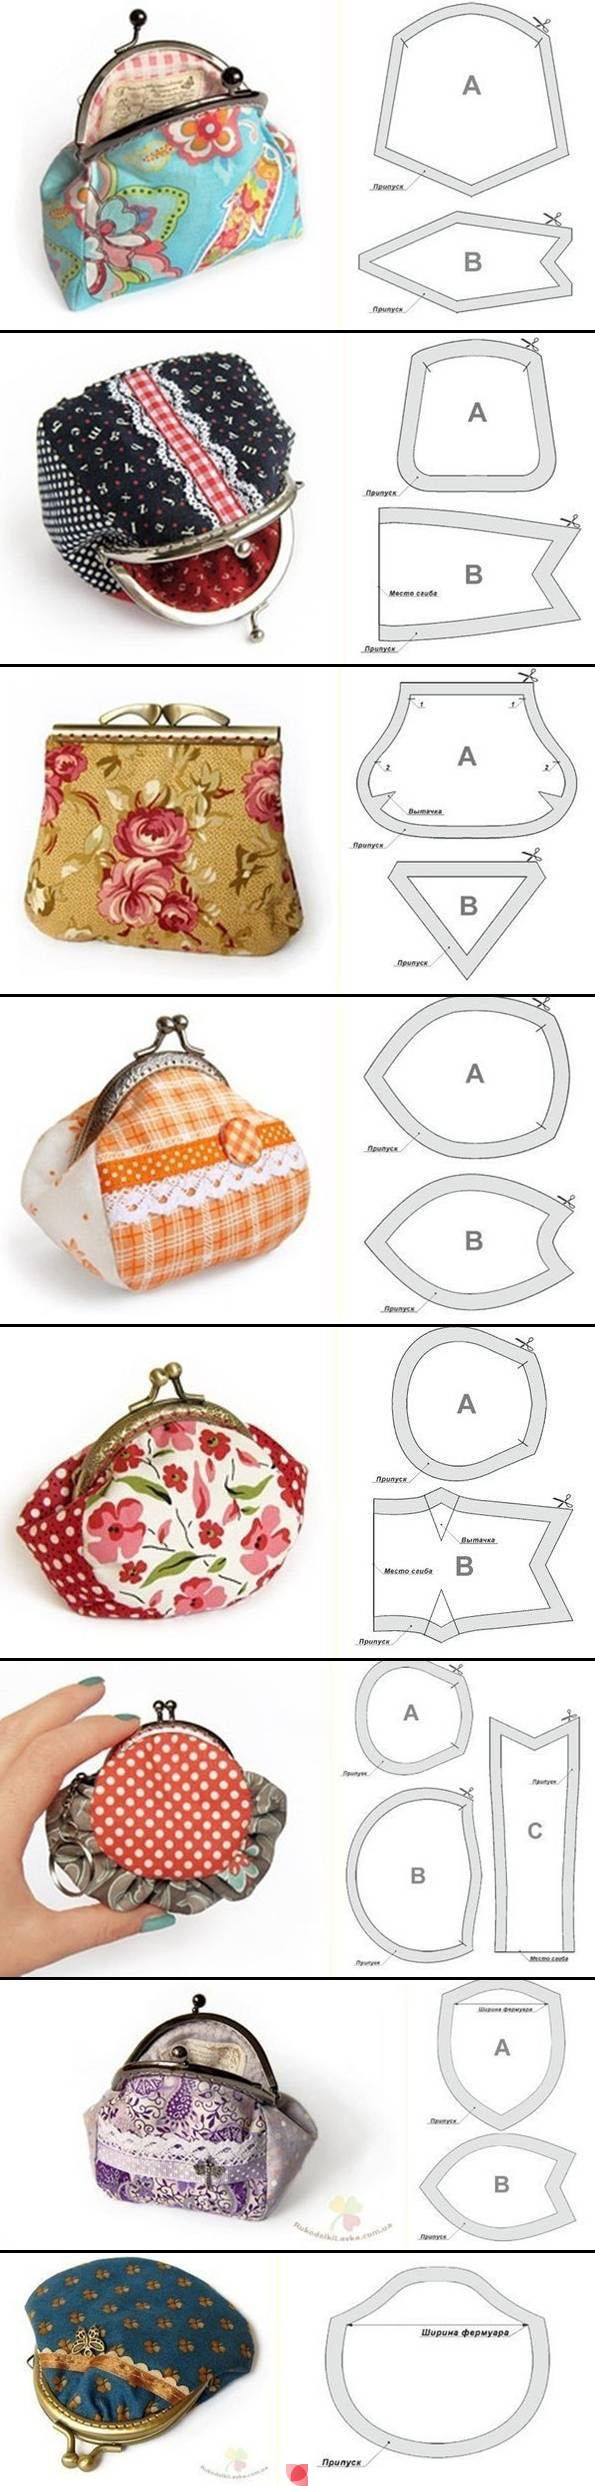 Pattern Shapes for Coin Purses